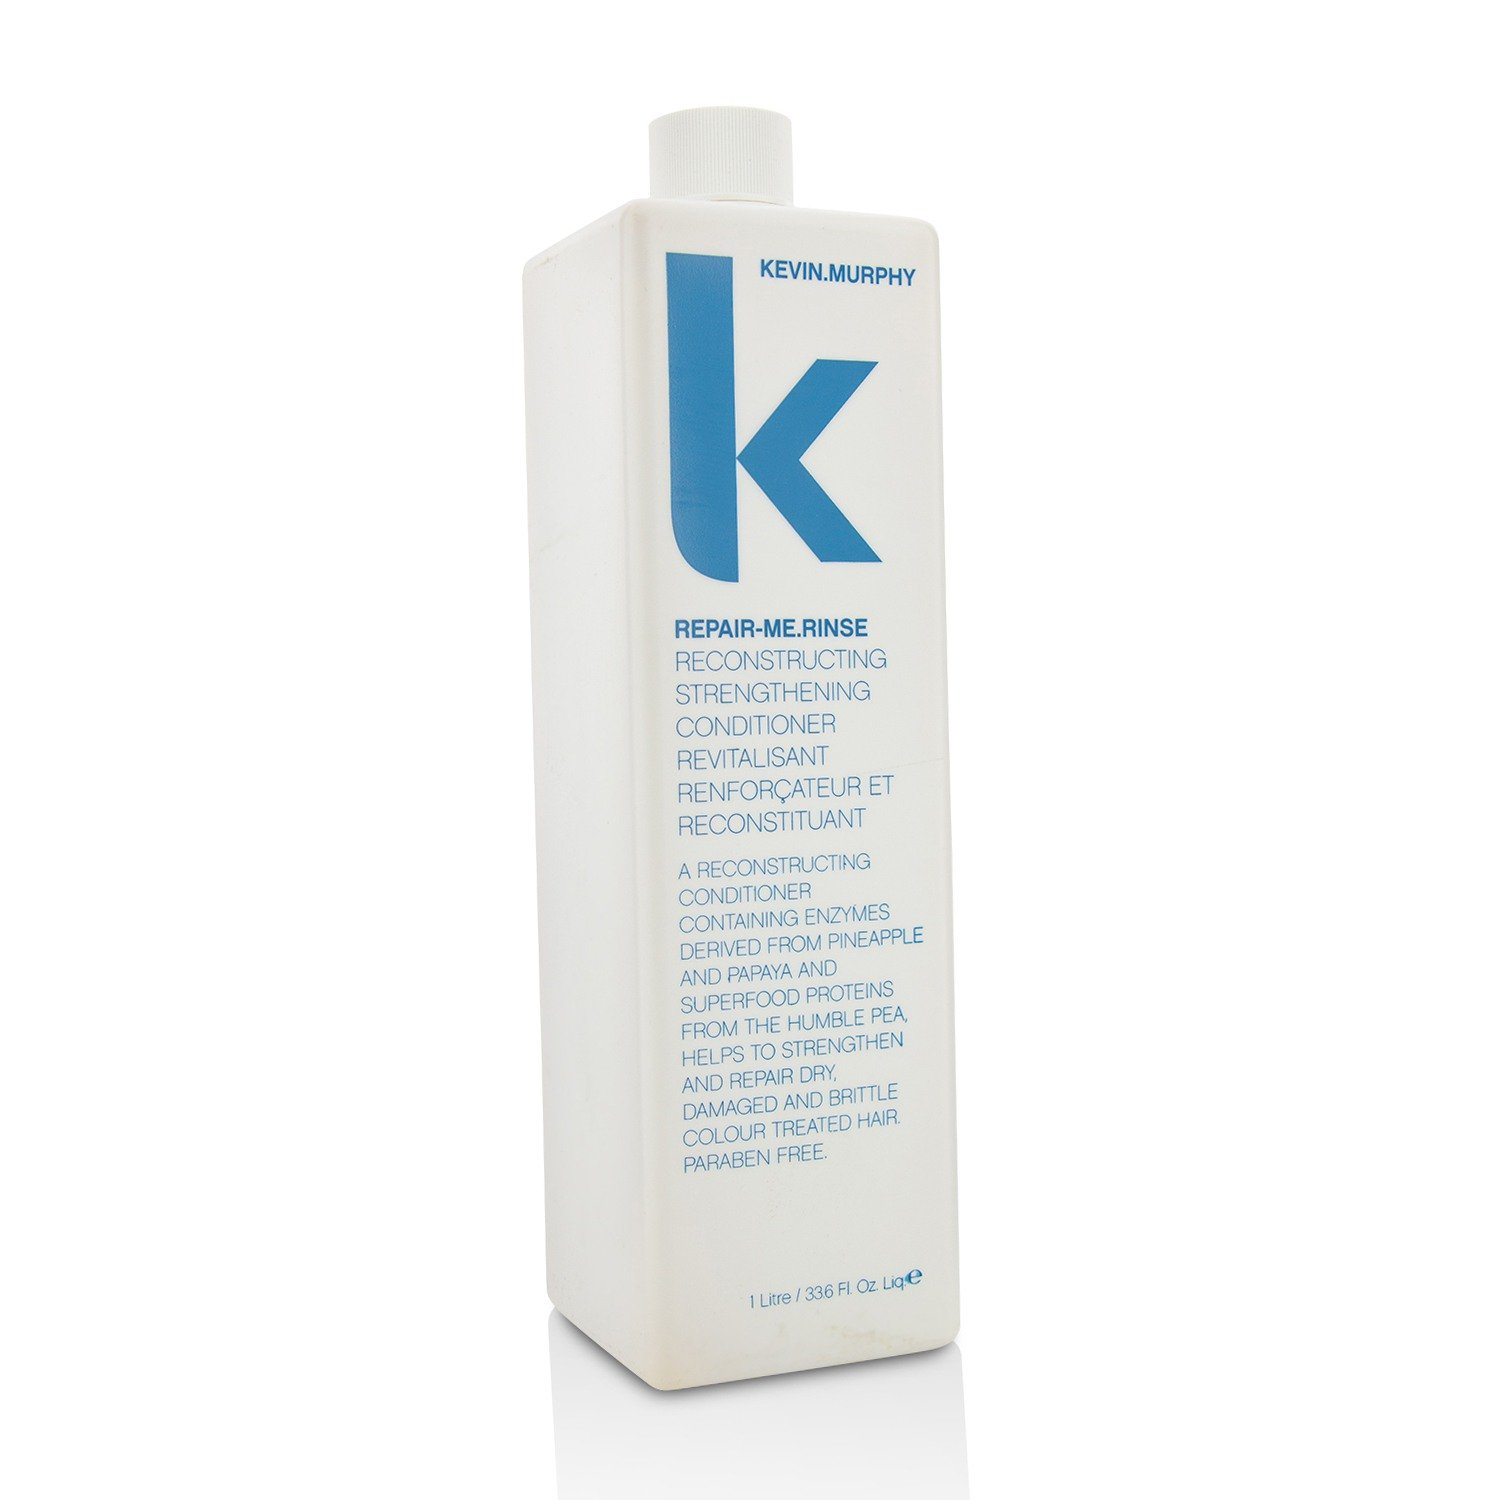 Kevin Murphy Conditioner Repair me rinse 1000ml ...